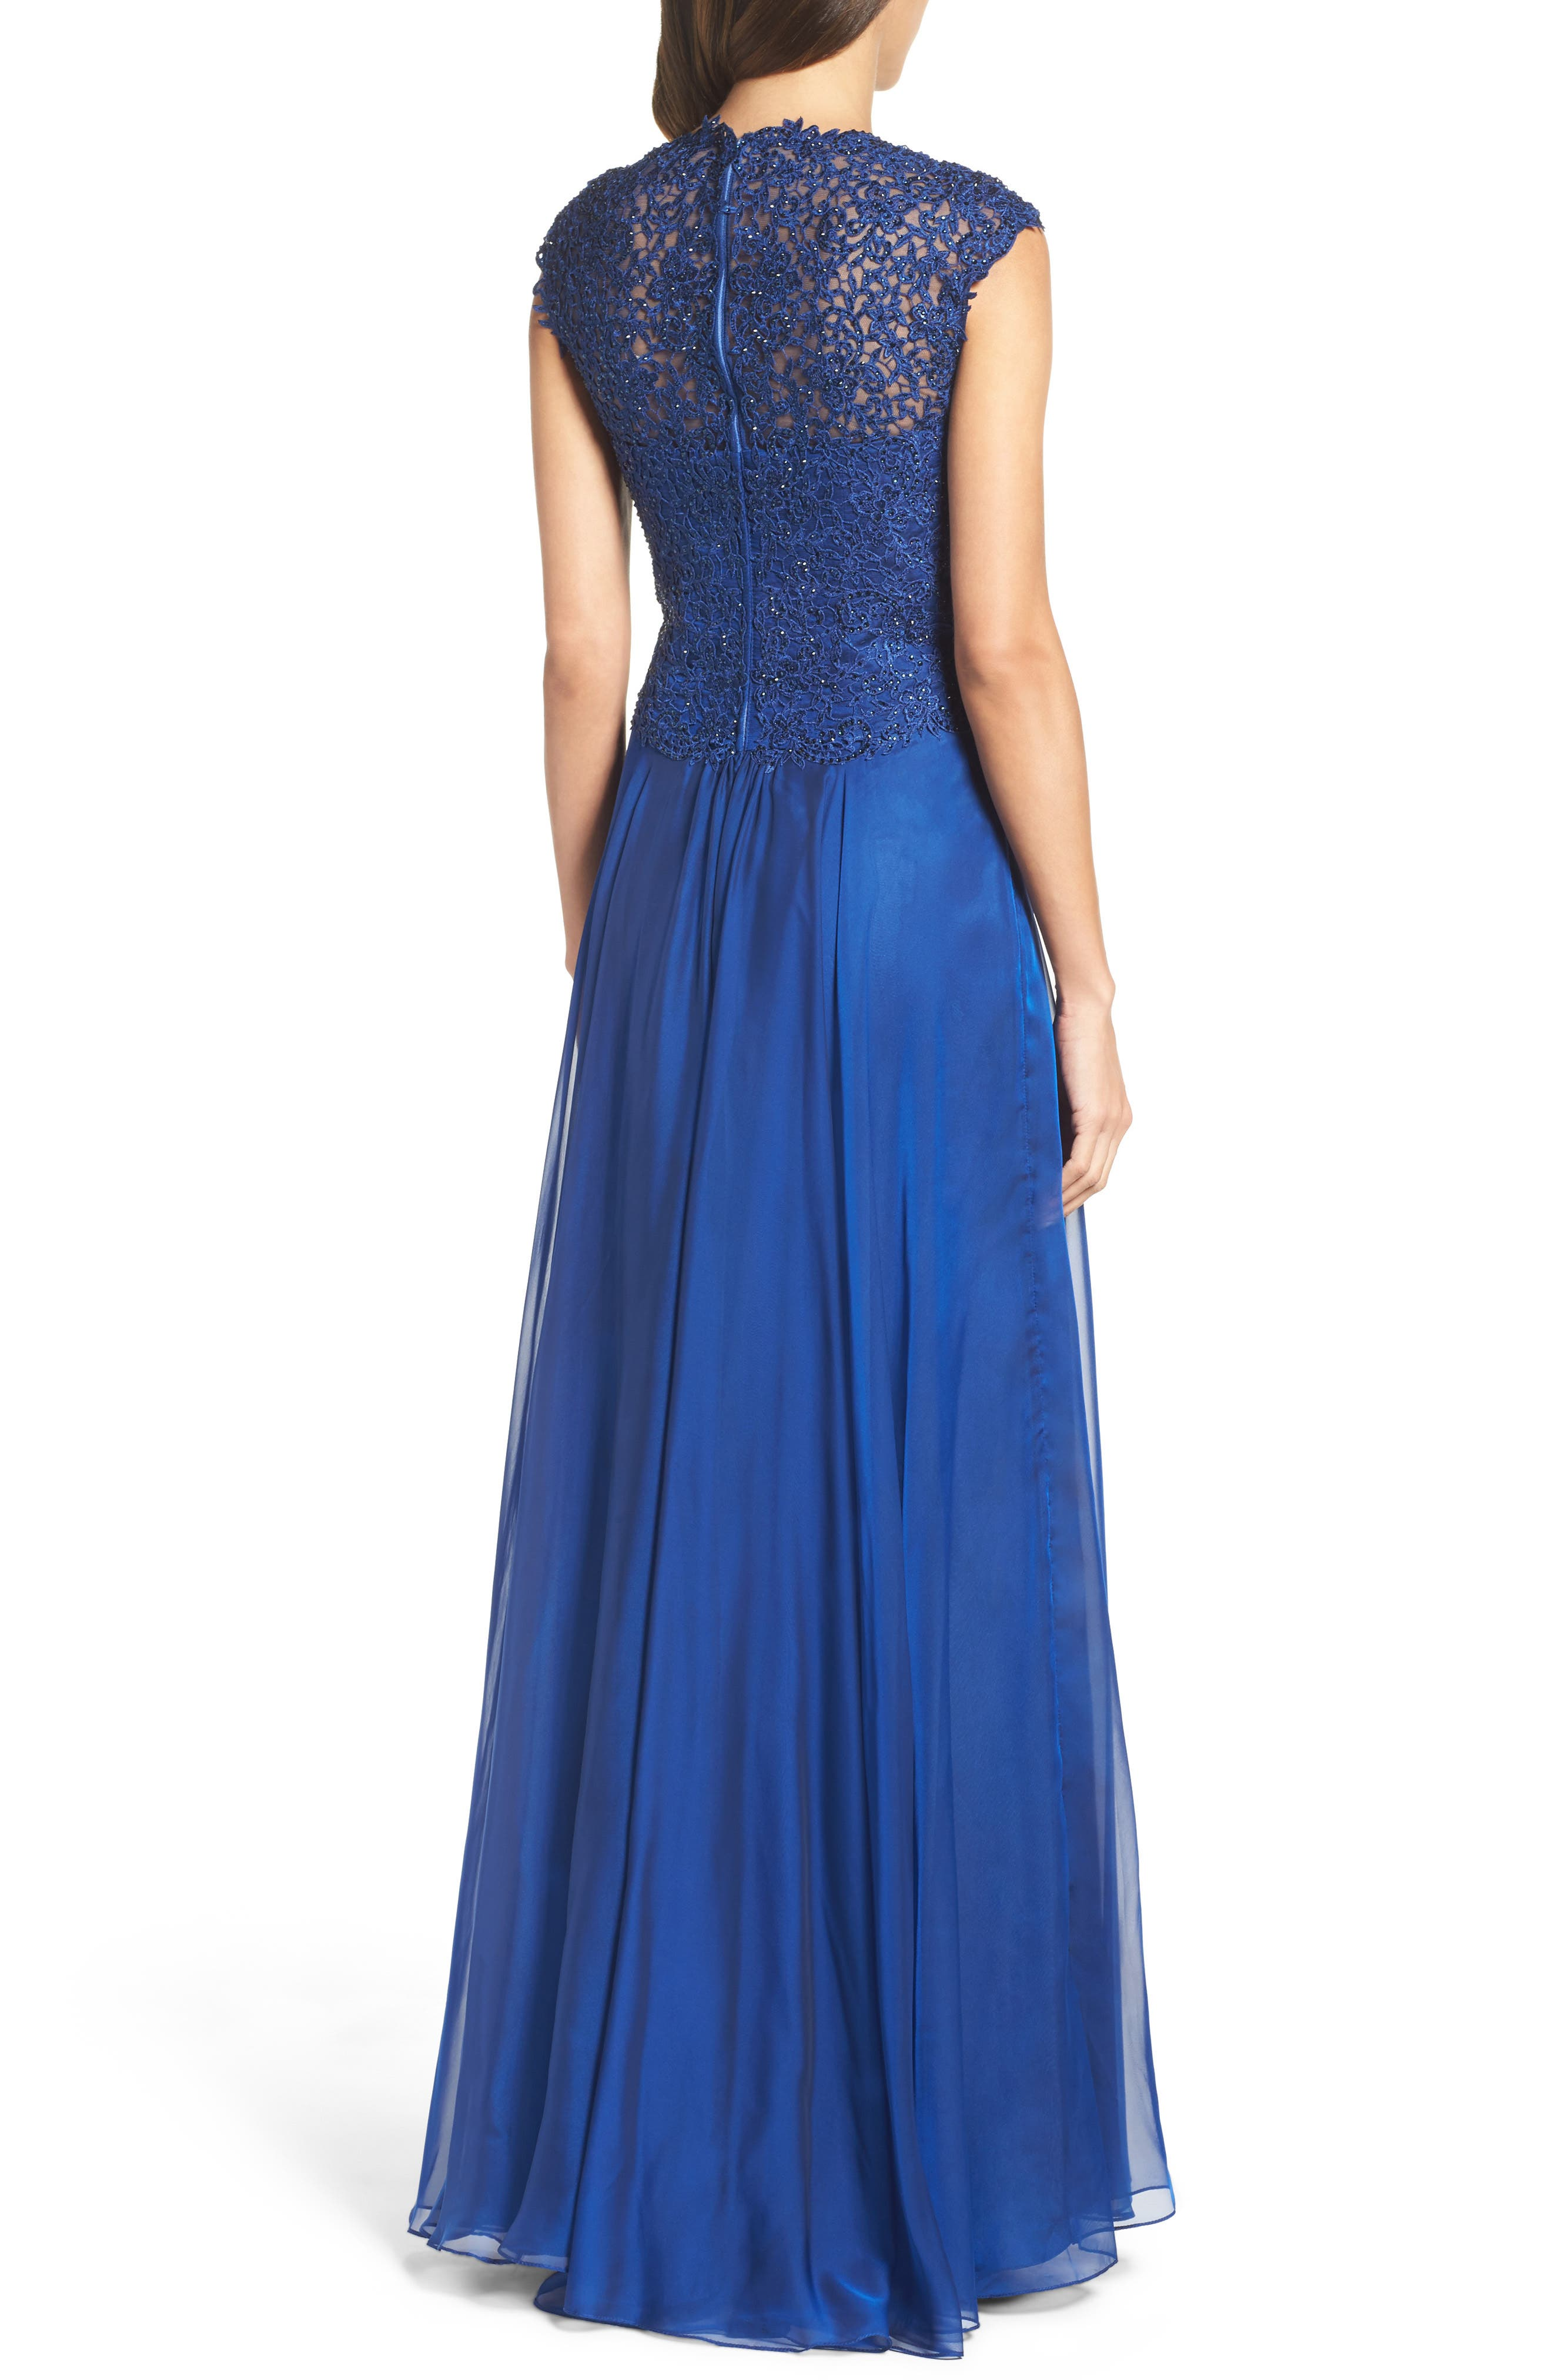 Ruched Chiffon Gown,                             Alternate thumbnail 2, color,                             Marine Blue